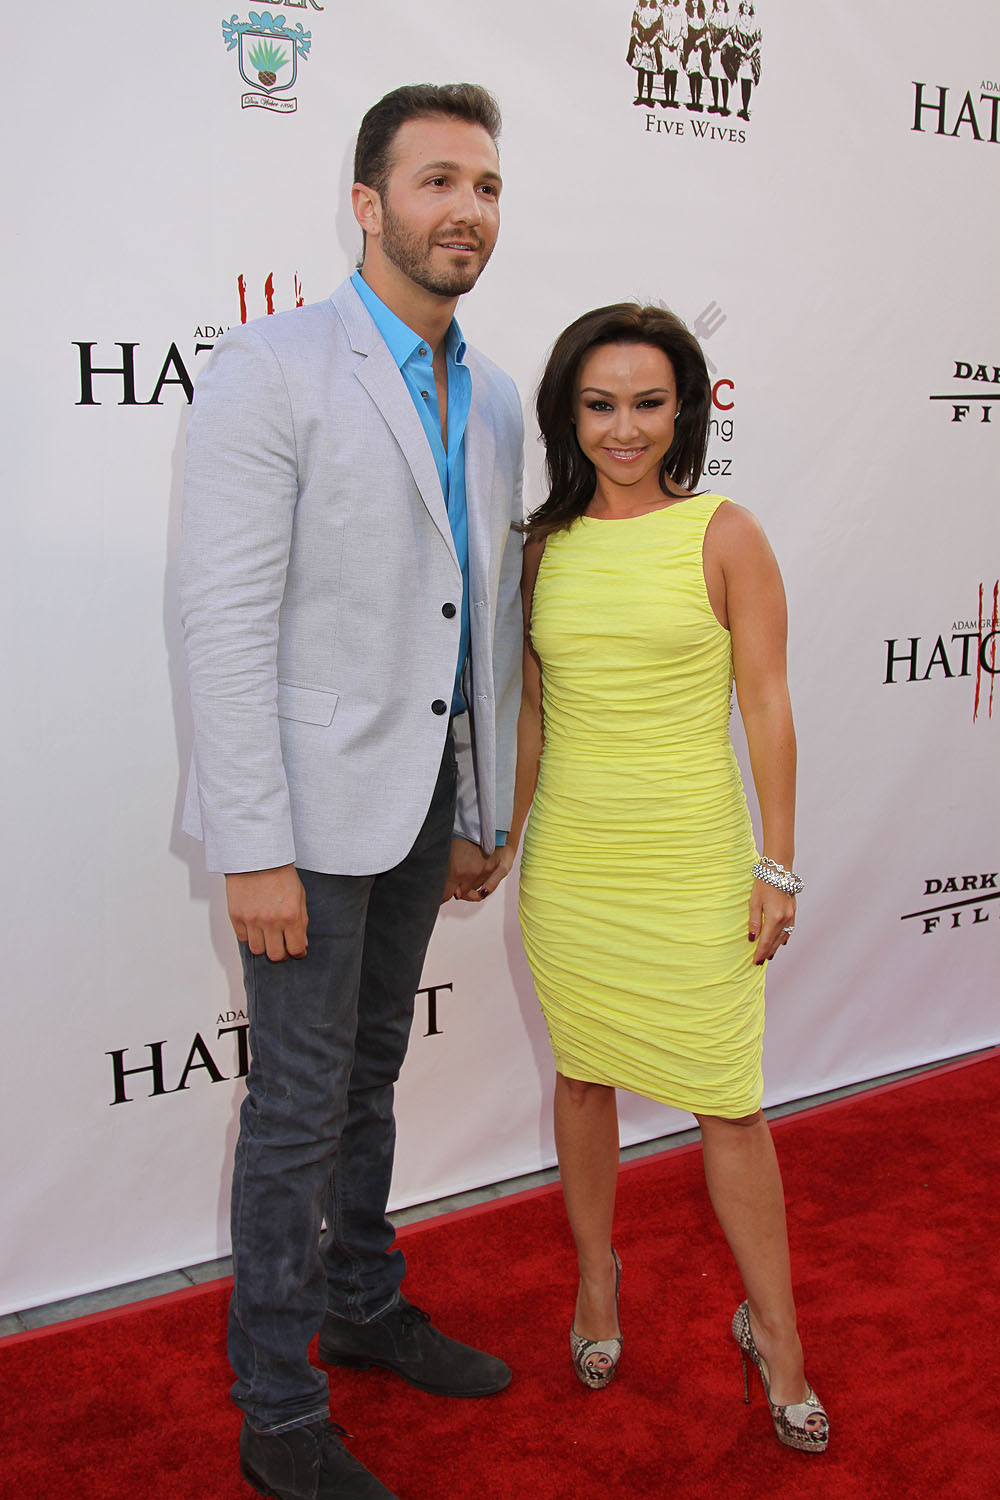 Danielle Harris And Fiance David Gross At The Red Carpet Premiere Of HATCHET III 2013 Sue